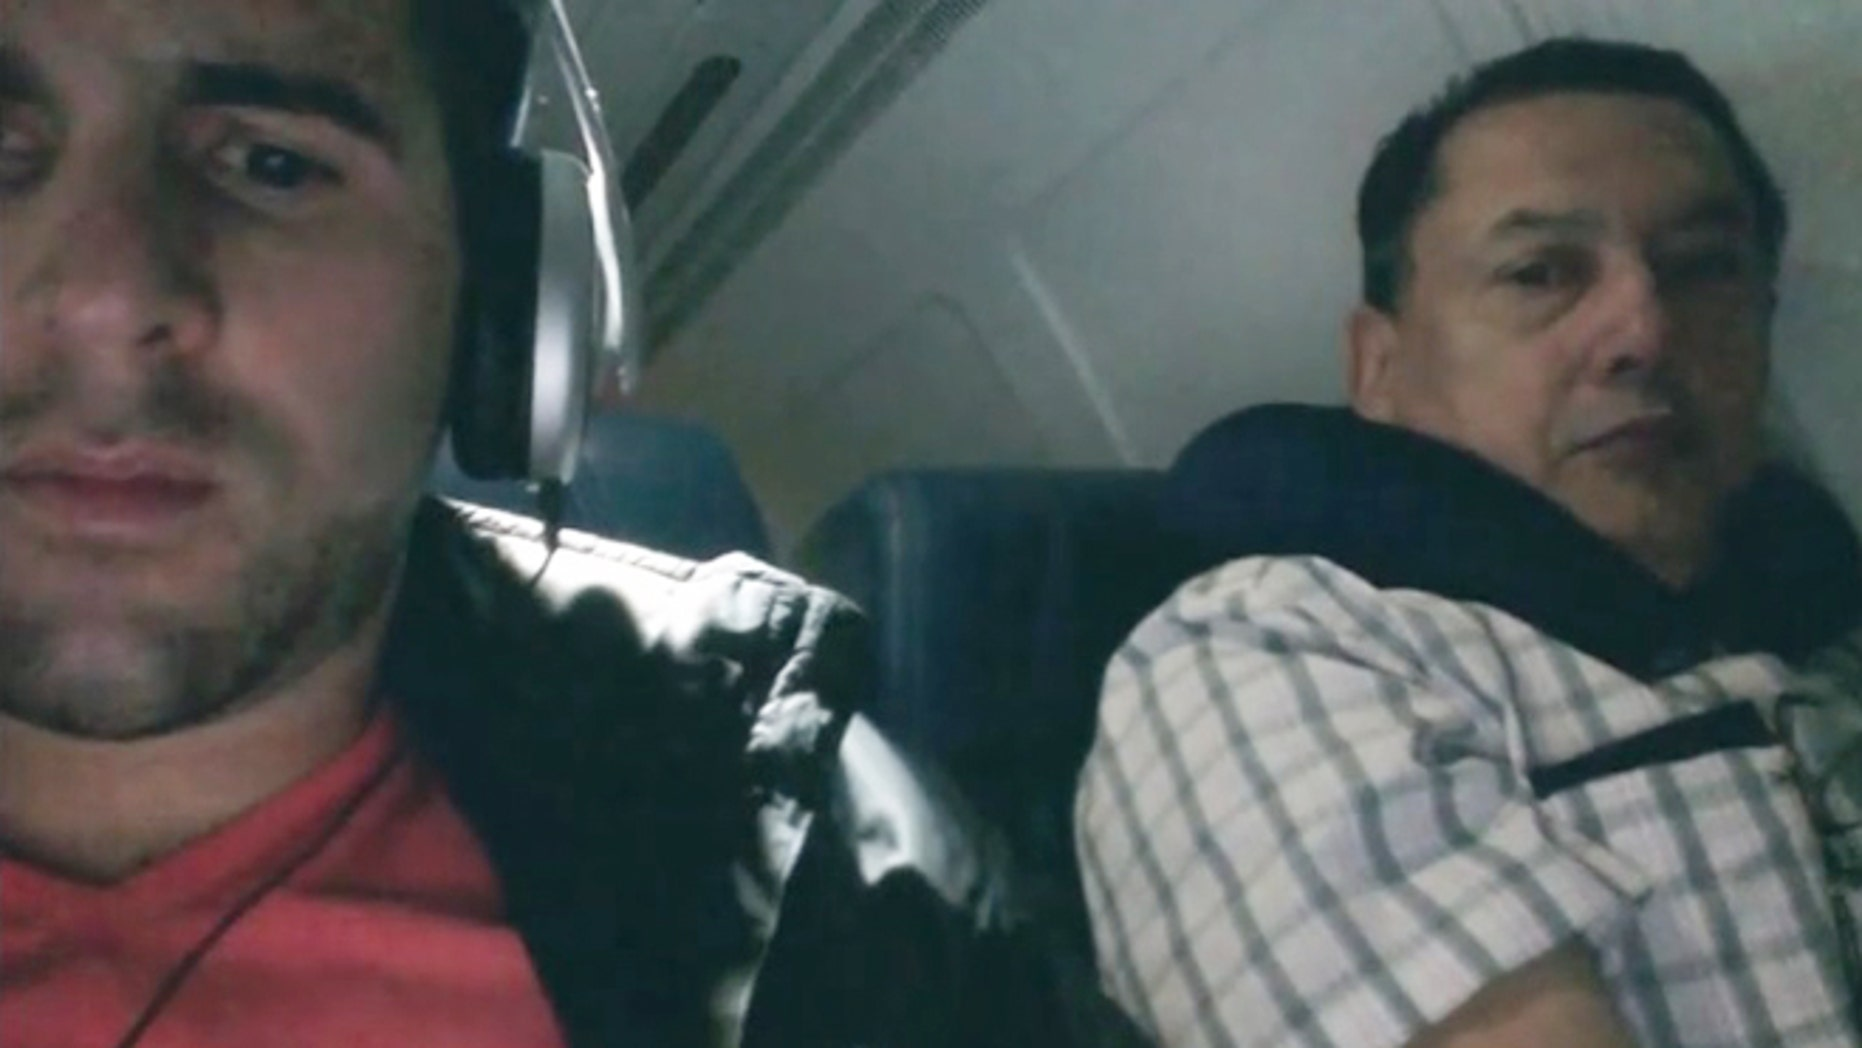 Busted. Clever flyer finds a way to catch a snooping seatmate.